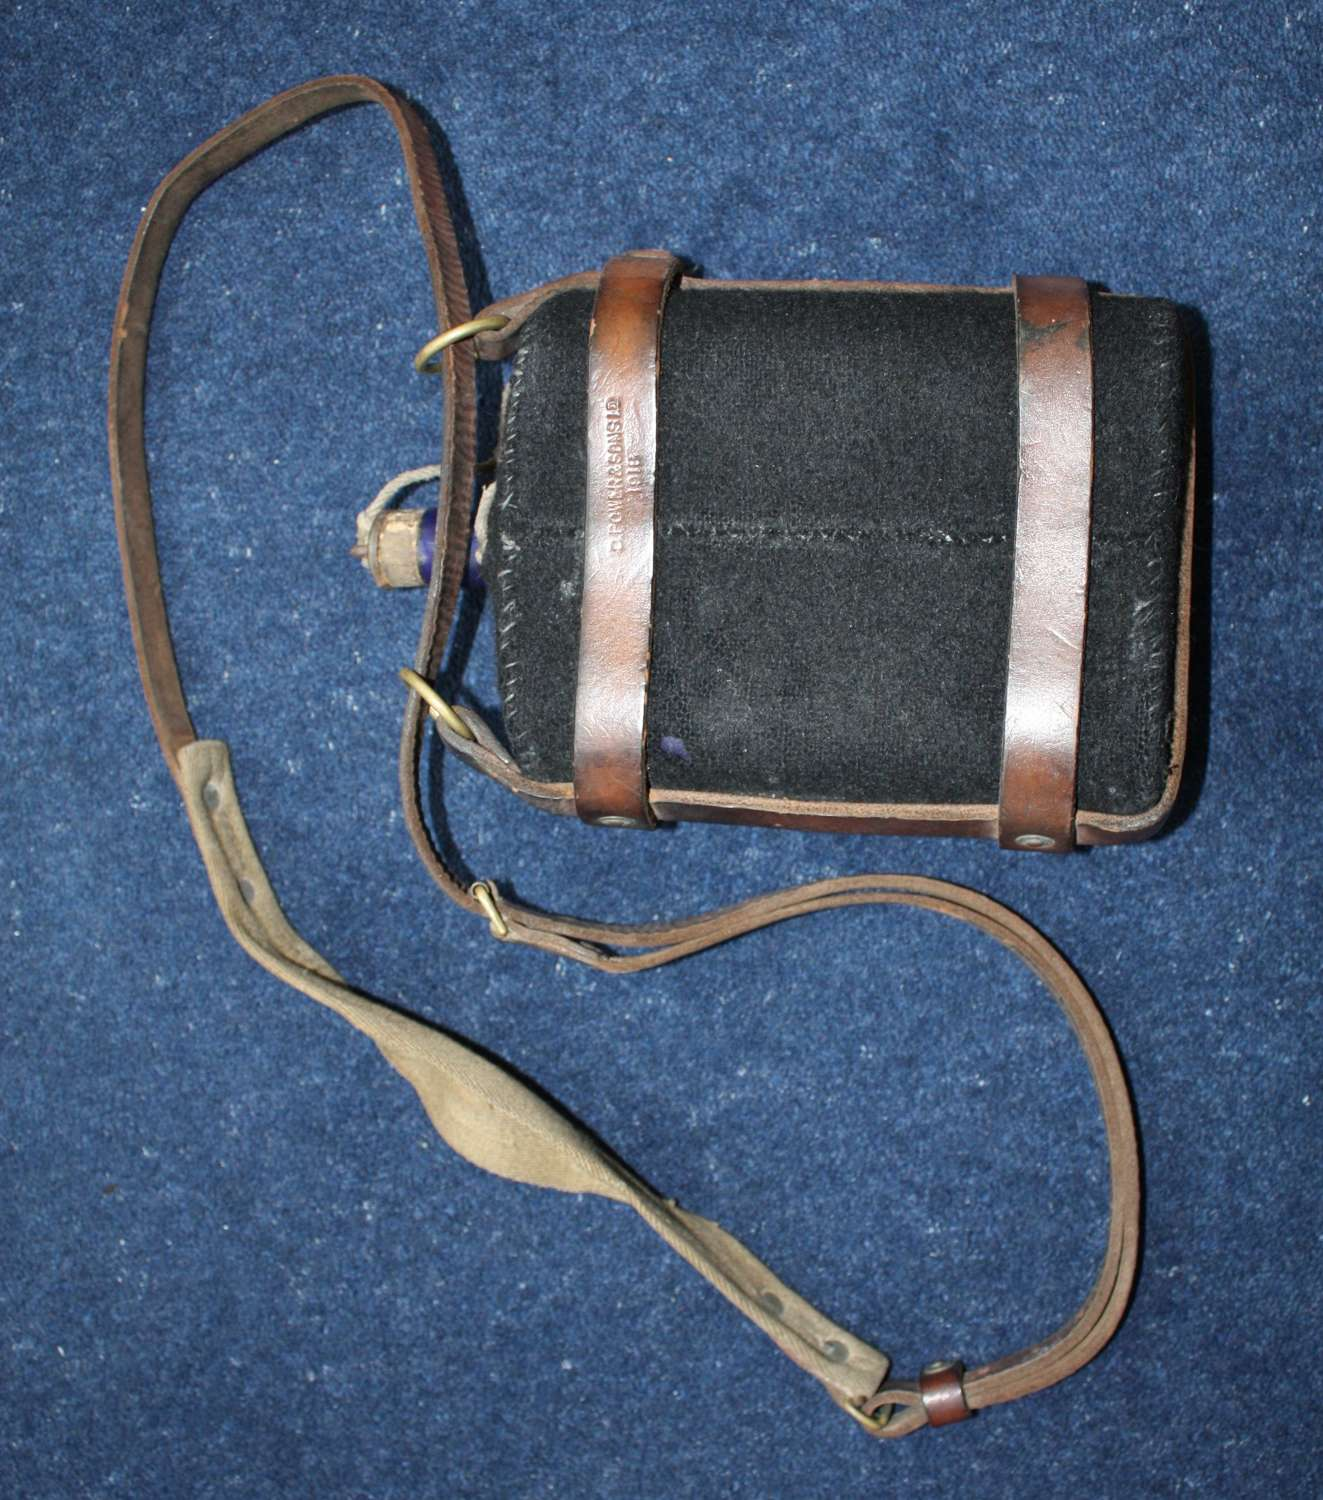 WW1 British Army Leather Water Bottle Carrier & Bottle: Dated 1918